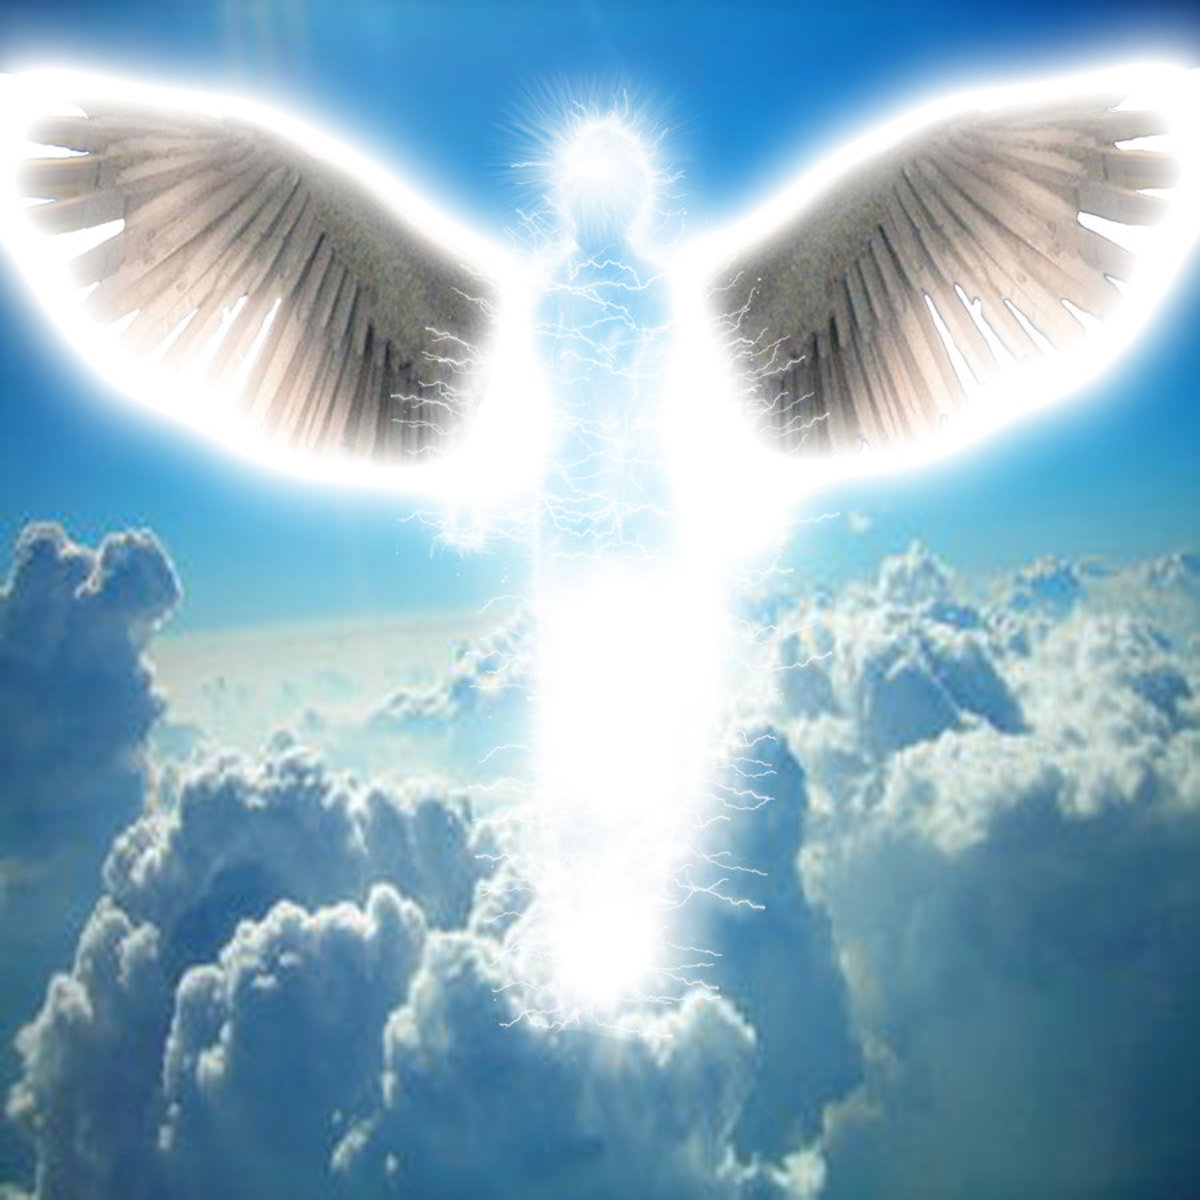 Angels sent to help us in need